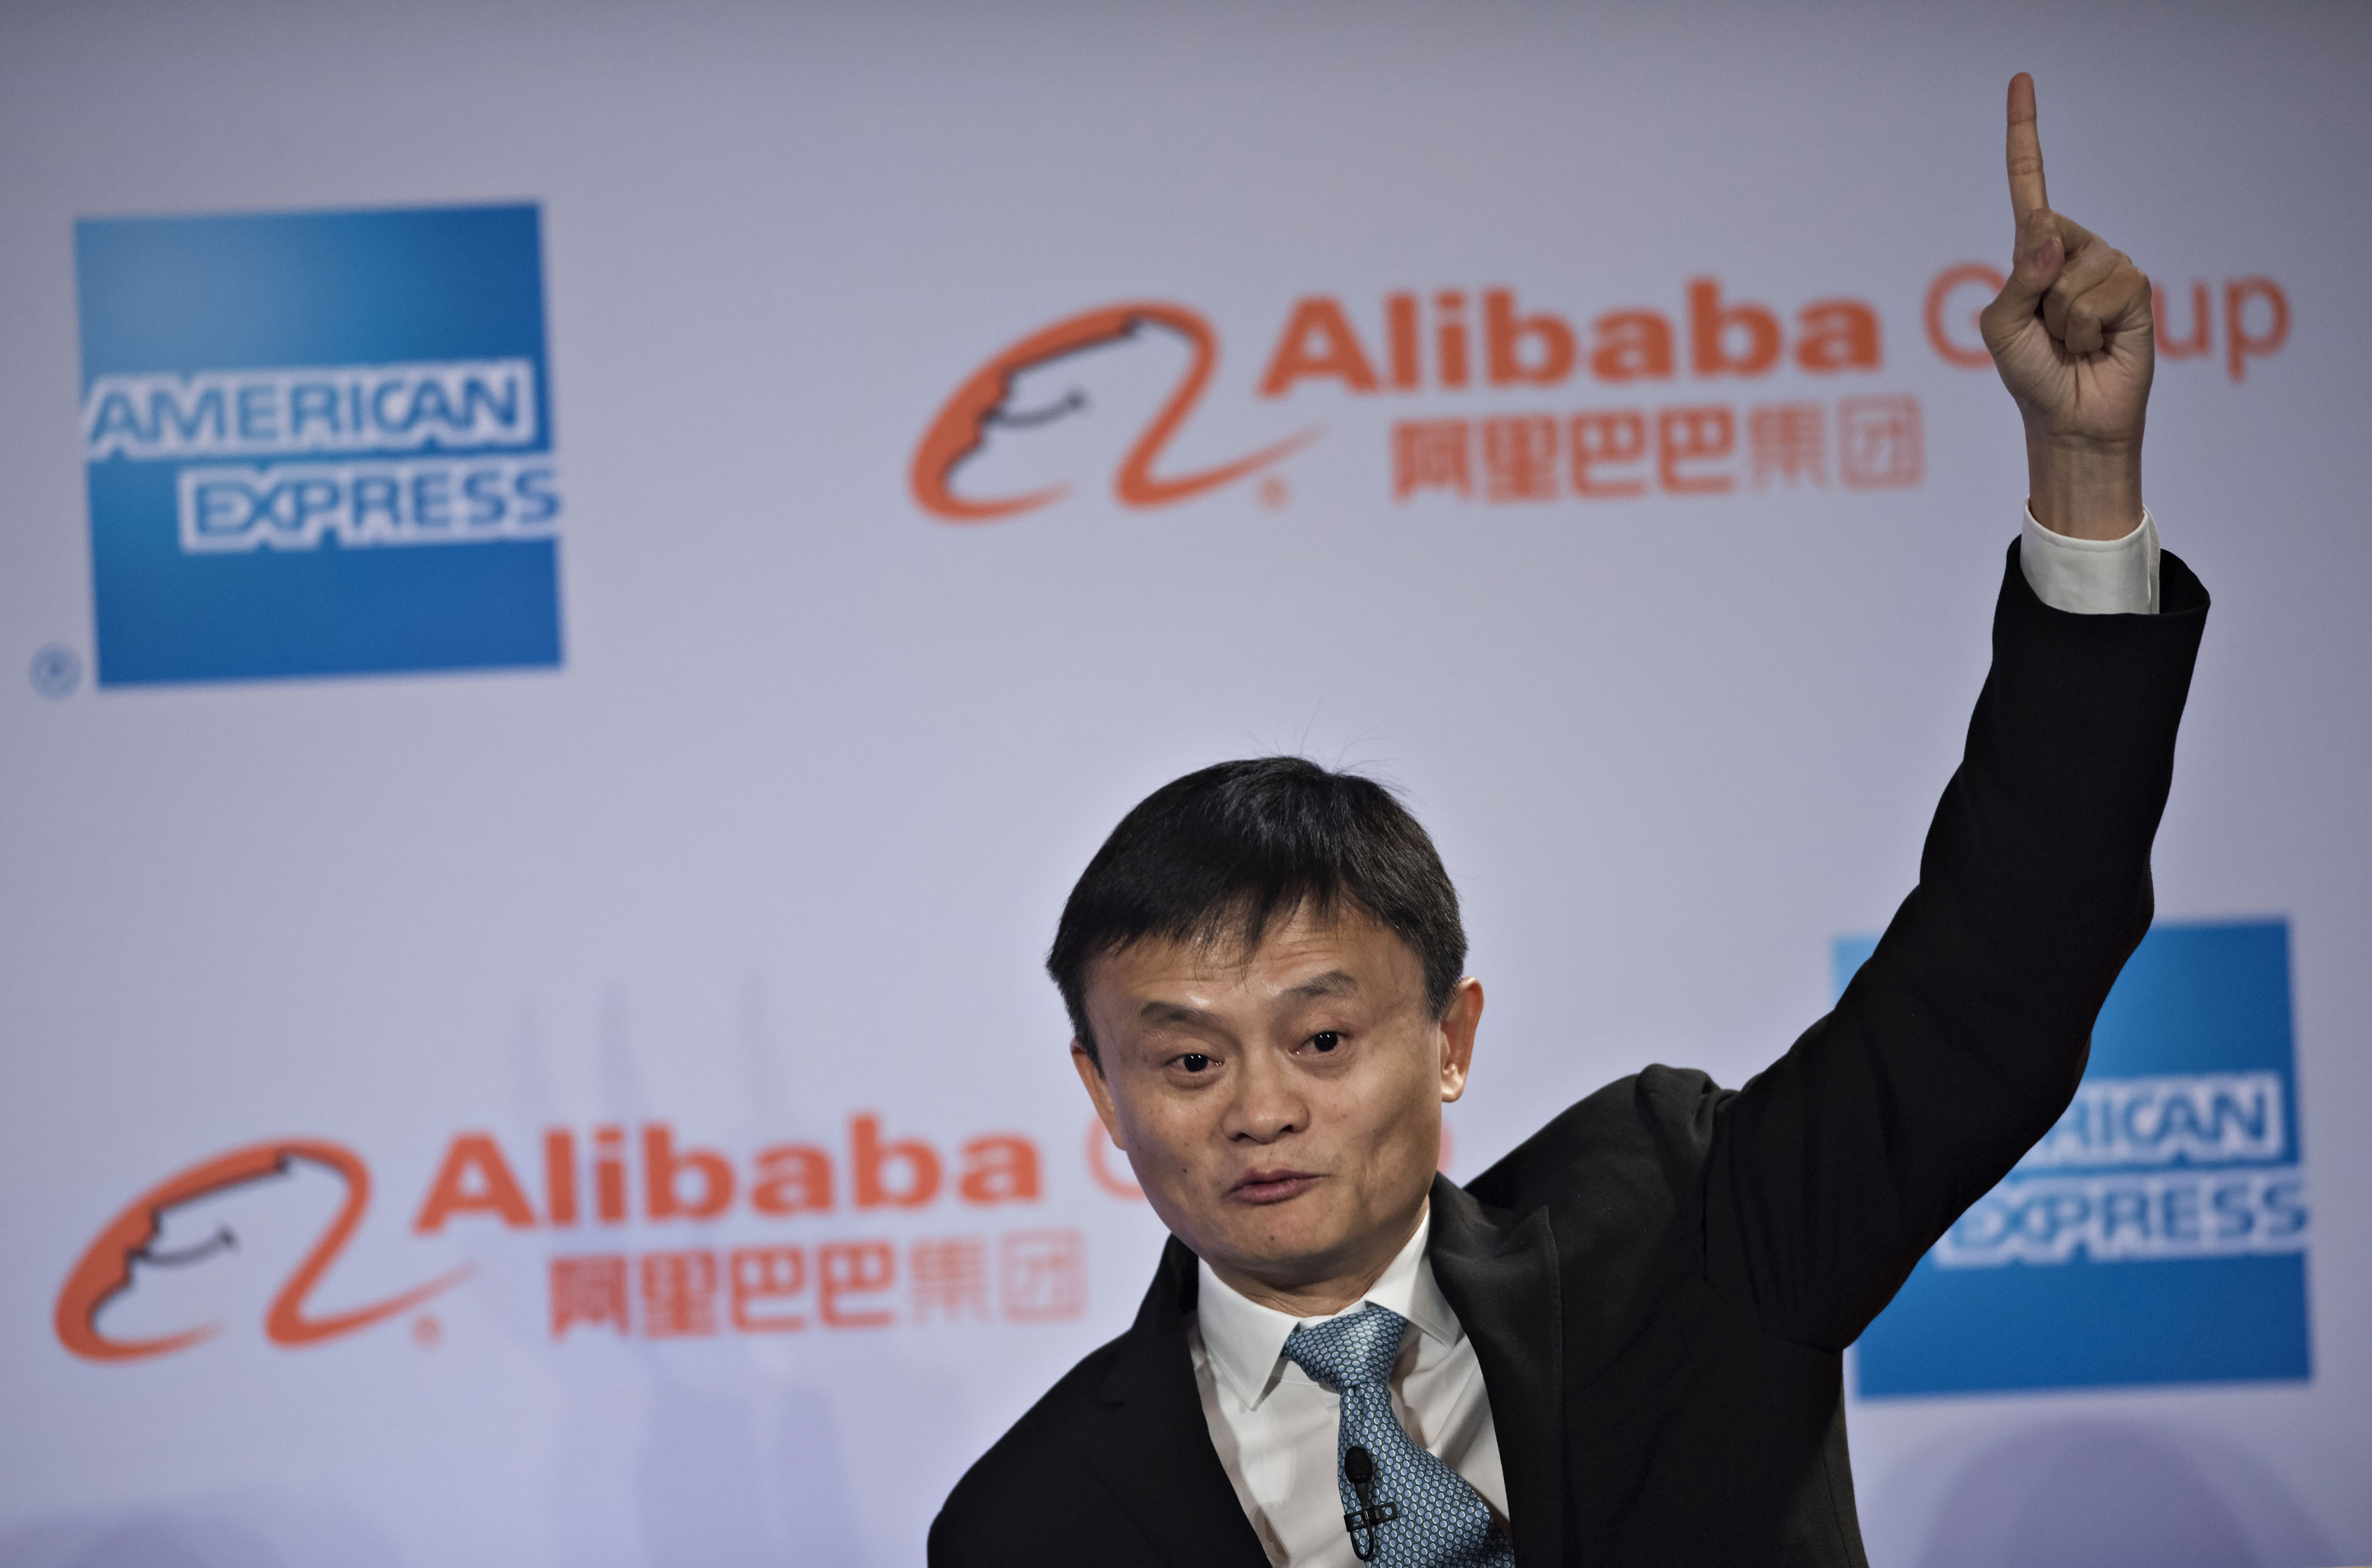 Billionaire Jack Ma, chairman of Alibaba Group Holding Ltd., speaks during an event in Chicago, Illinois, U.S., on Wednesday, June 10, 2015. Alibaba Group Holding Ltd.Õs entry into the U.S. runs through small businesses, the same path the online marketplace took in China, Ma said. Photographer: Daniel Acker/Bloomberg *** Local Caption *** Jack Ma